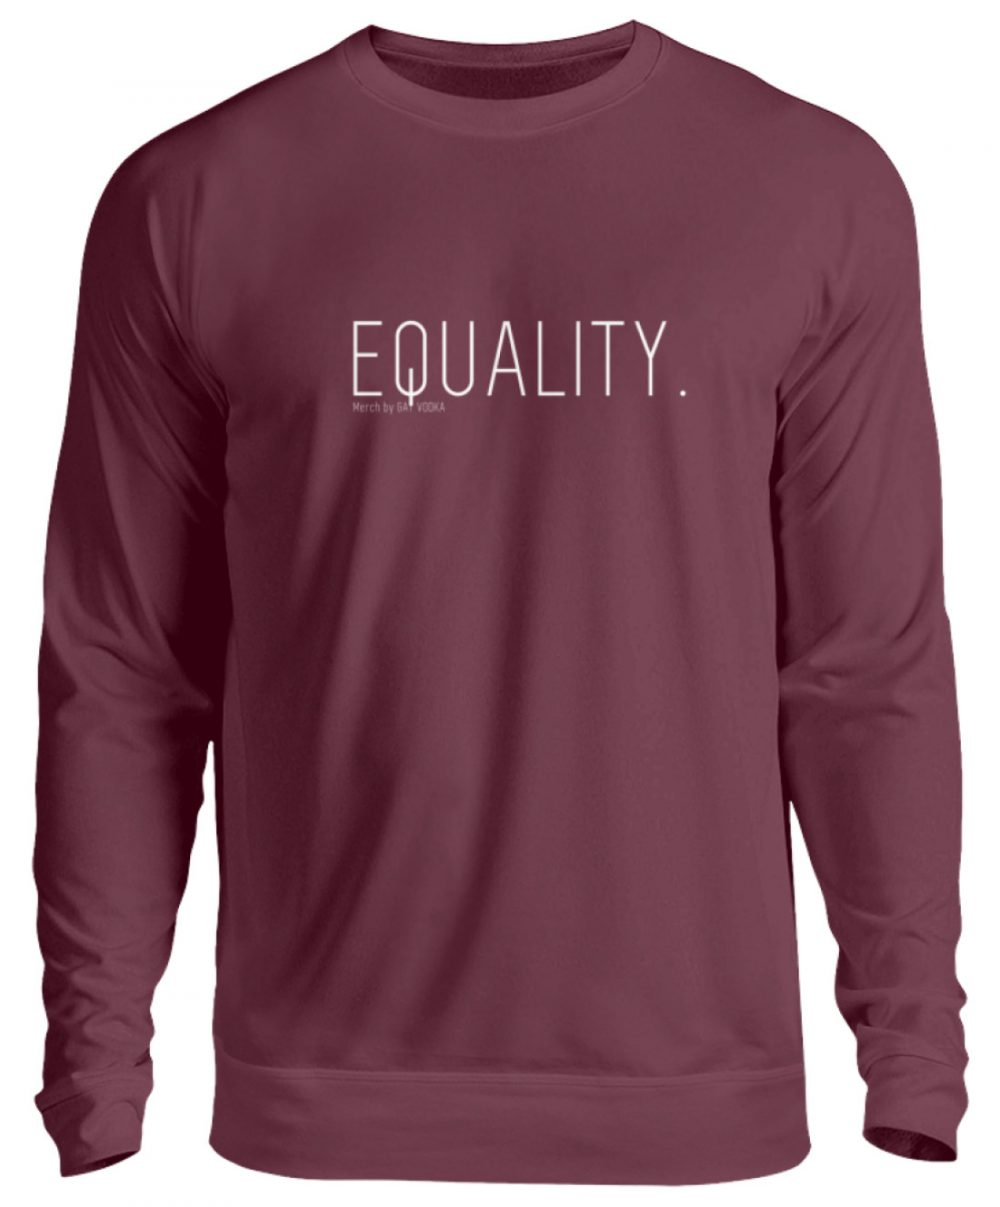 EQUALITY. - Unisex Pullover-839